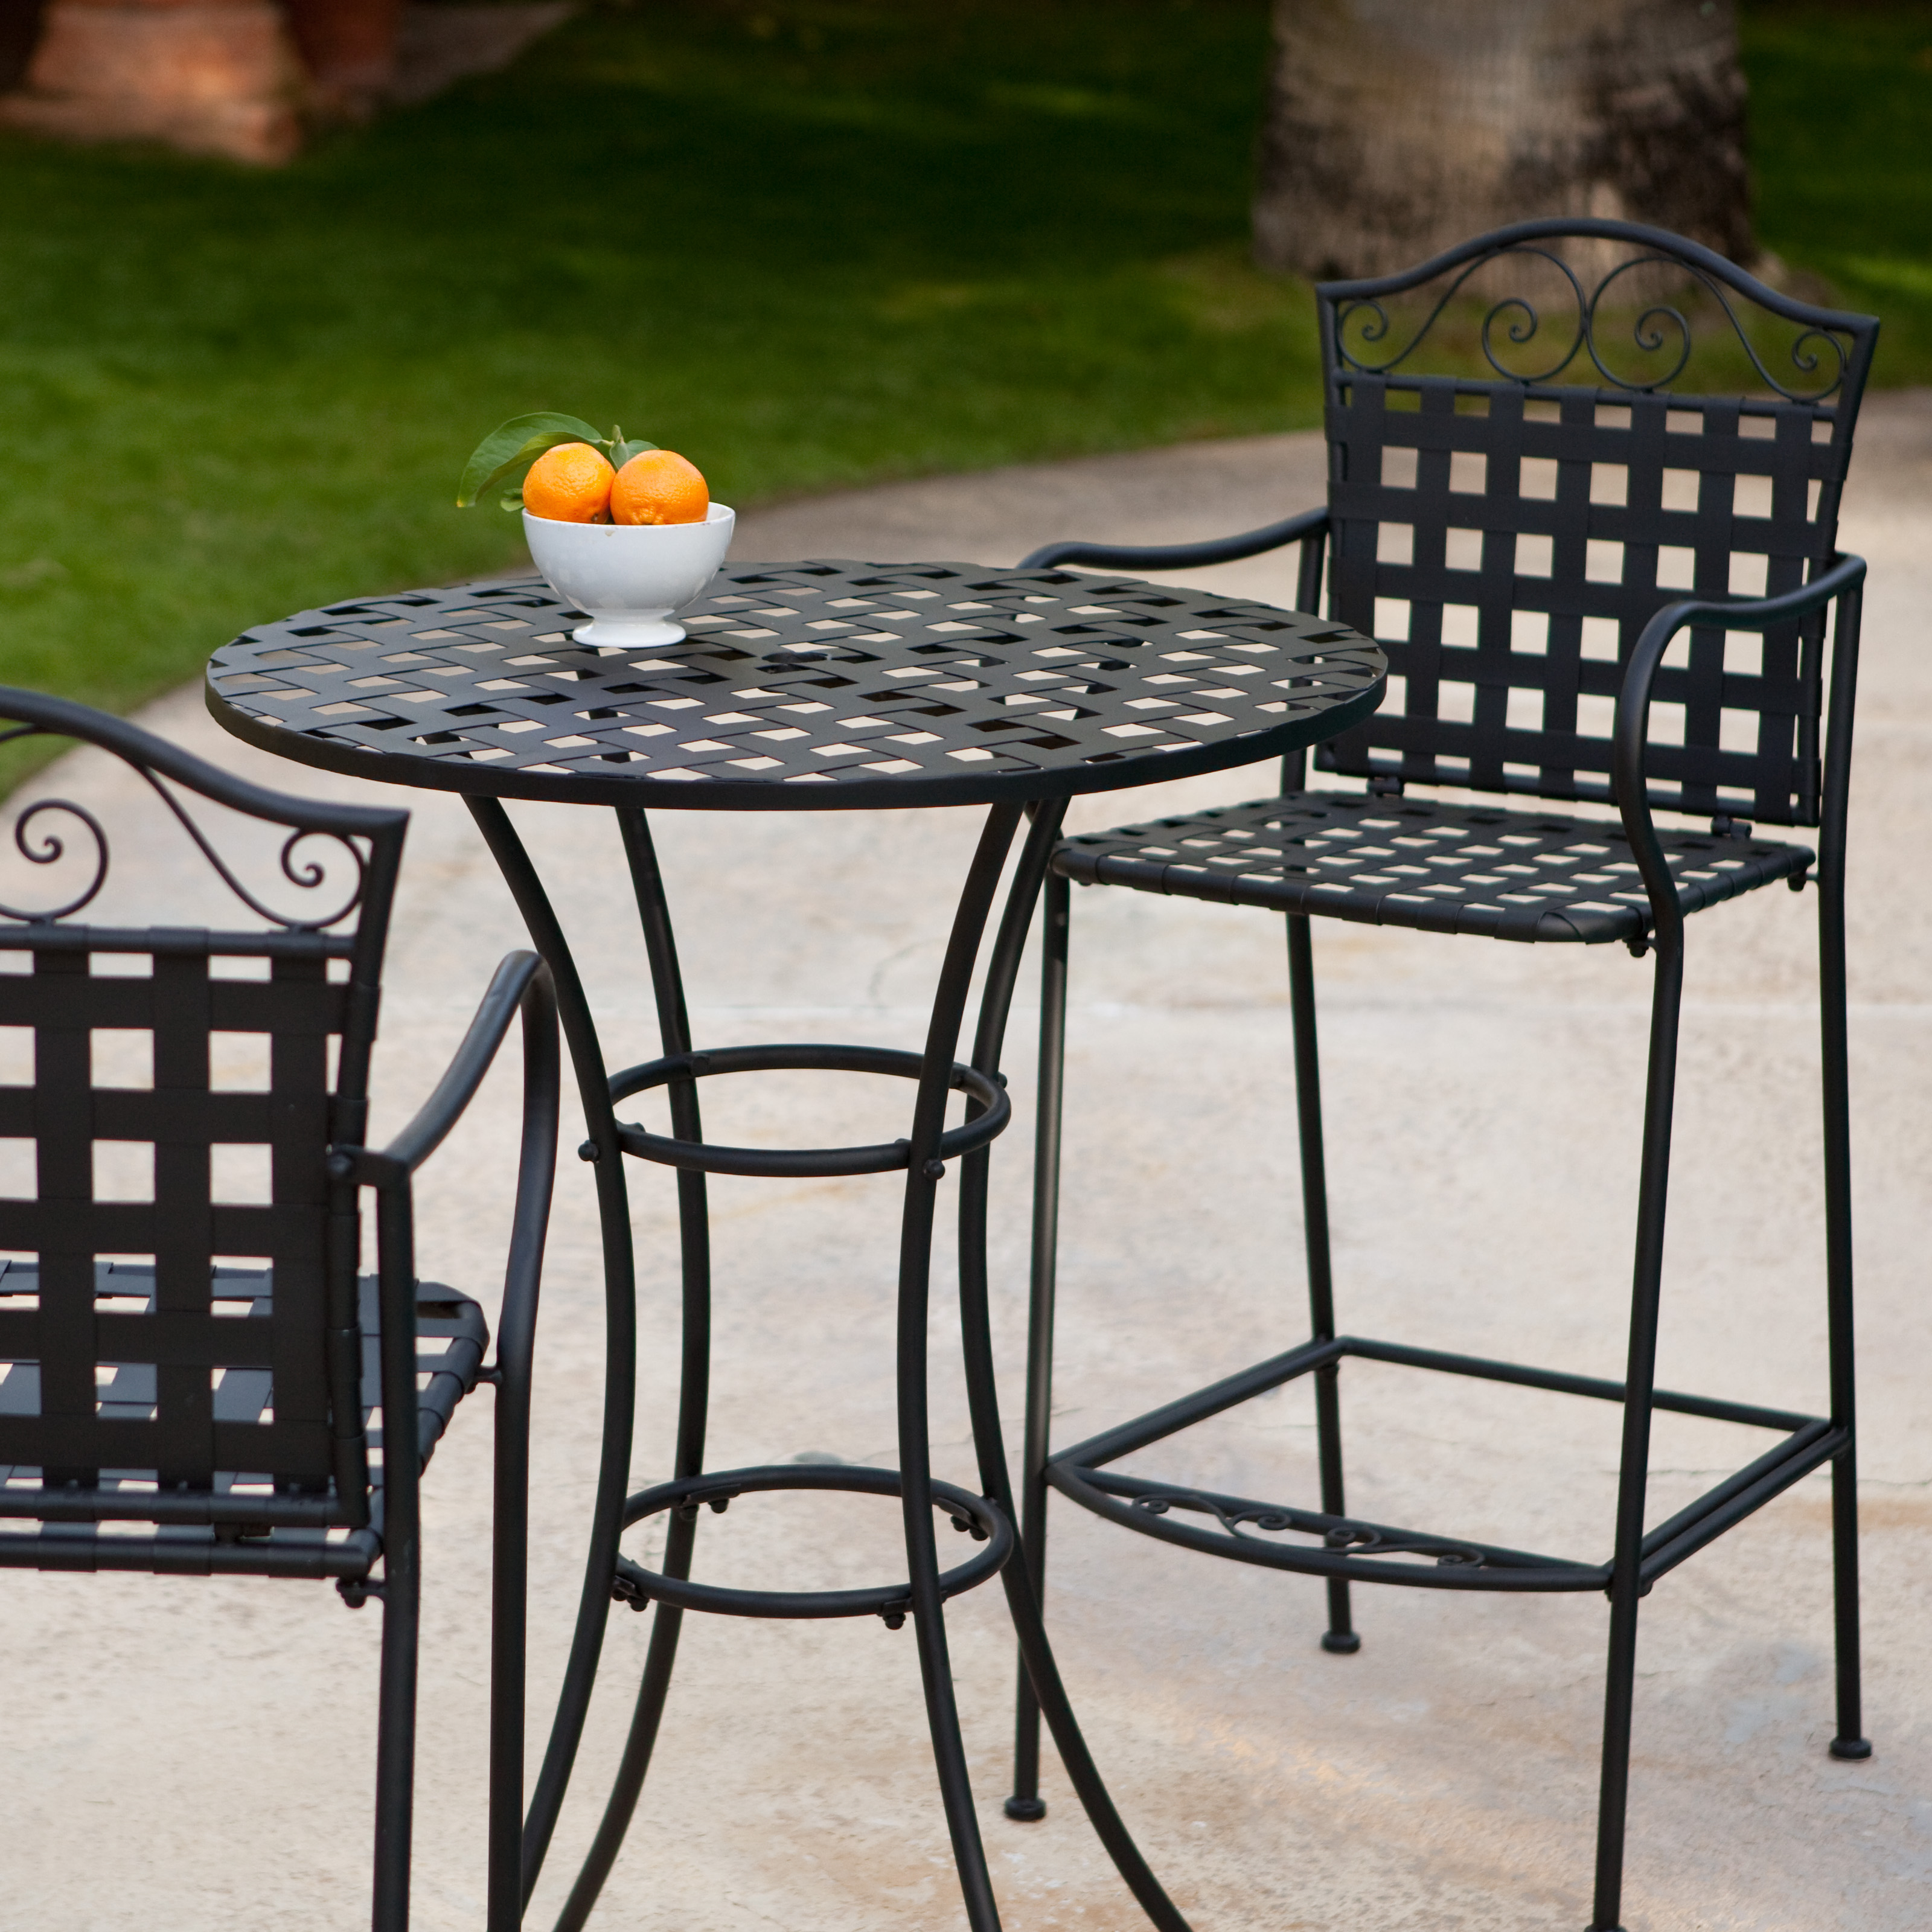 Belham Living Capri Wrought Iron Bar Height Bistro Table By Woodard Hayneedle